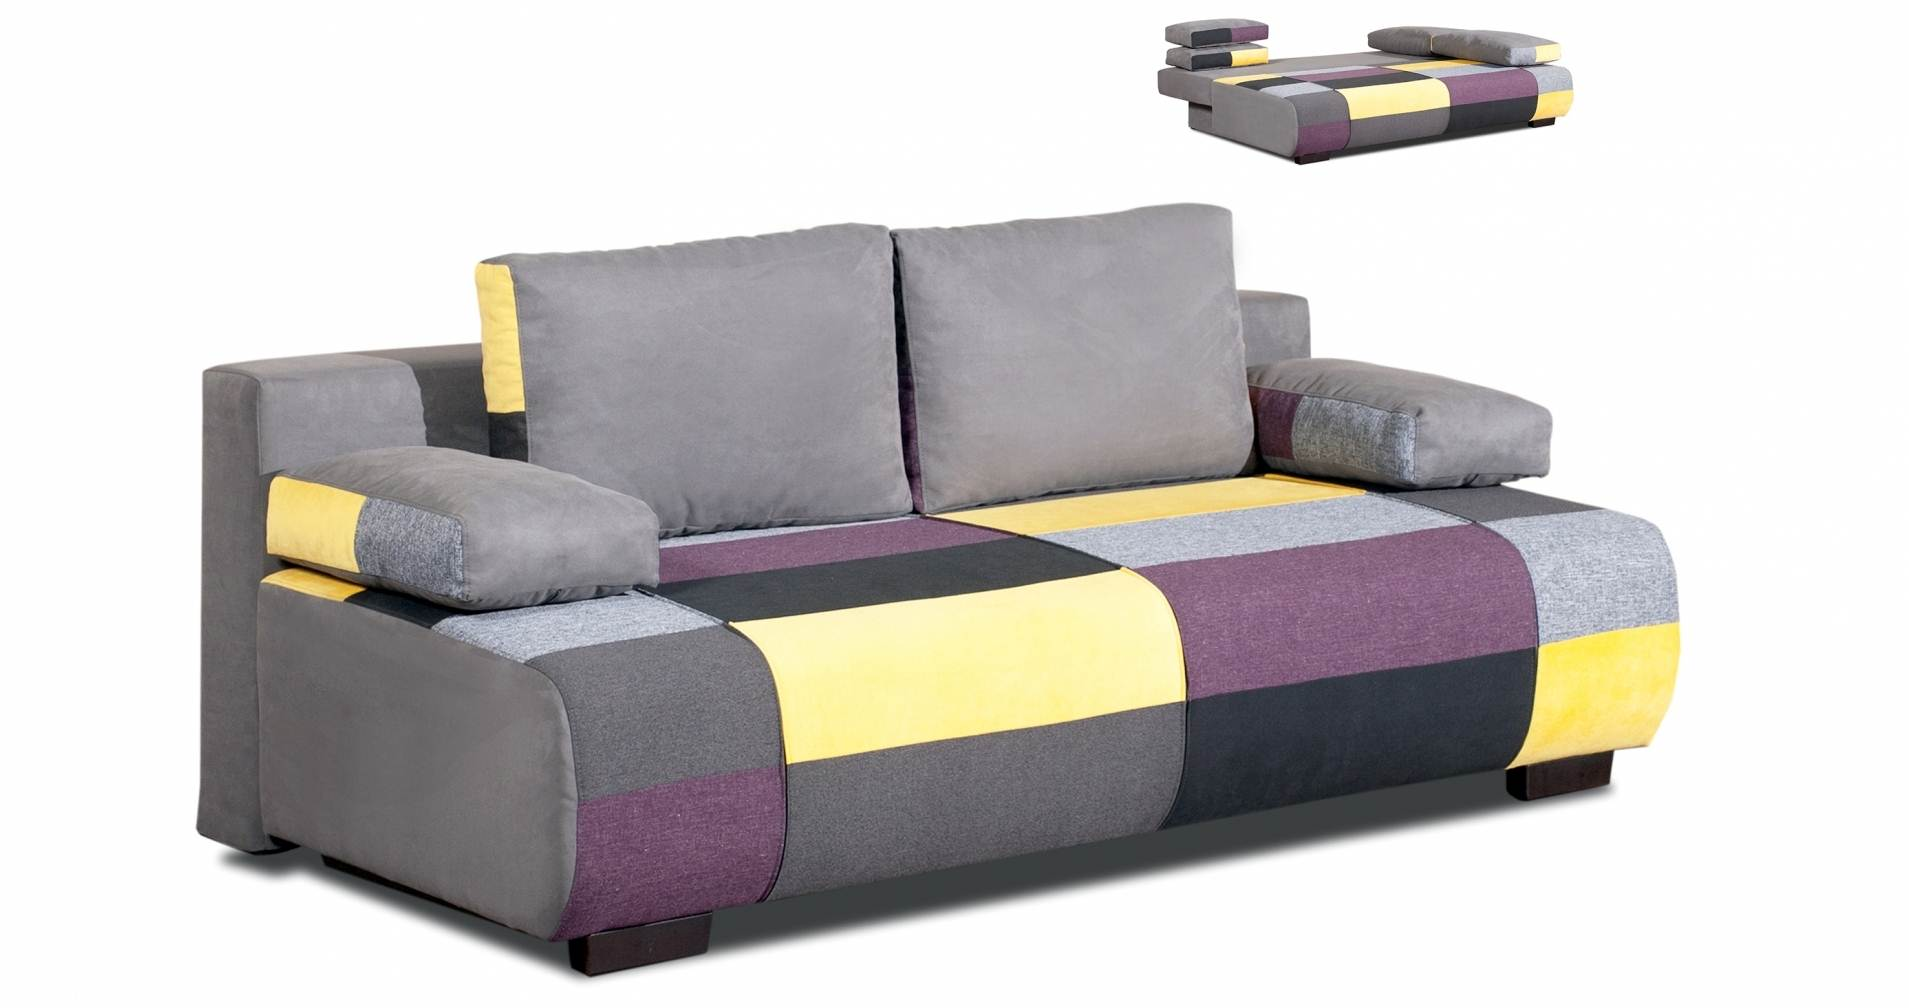 Deco in paris canape 3 places convertible en tissu jaune for Canape en l convertible